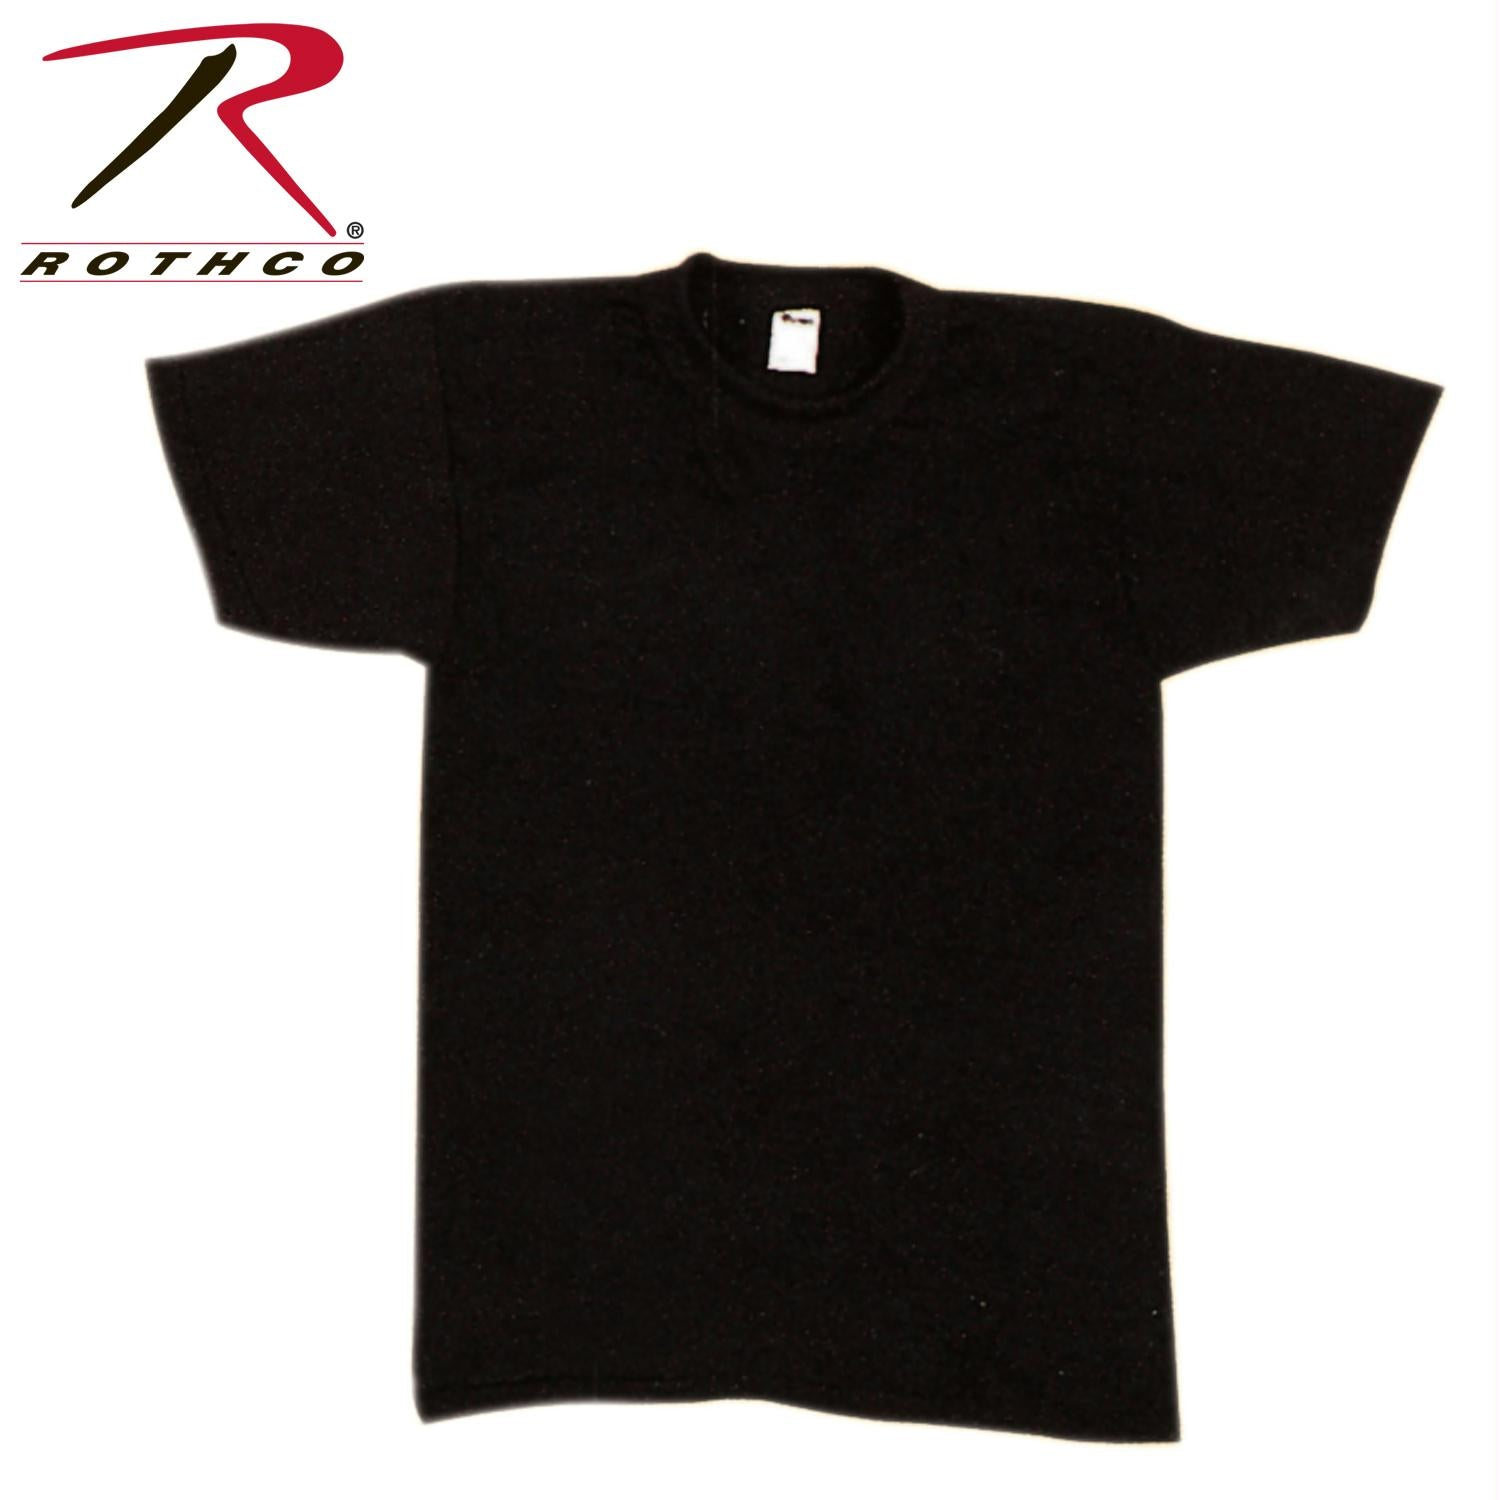 Rothco Solid Color Poly/Cotton Military T-Shirt - Black / M